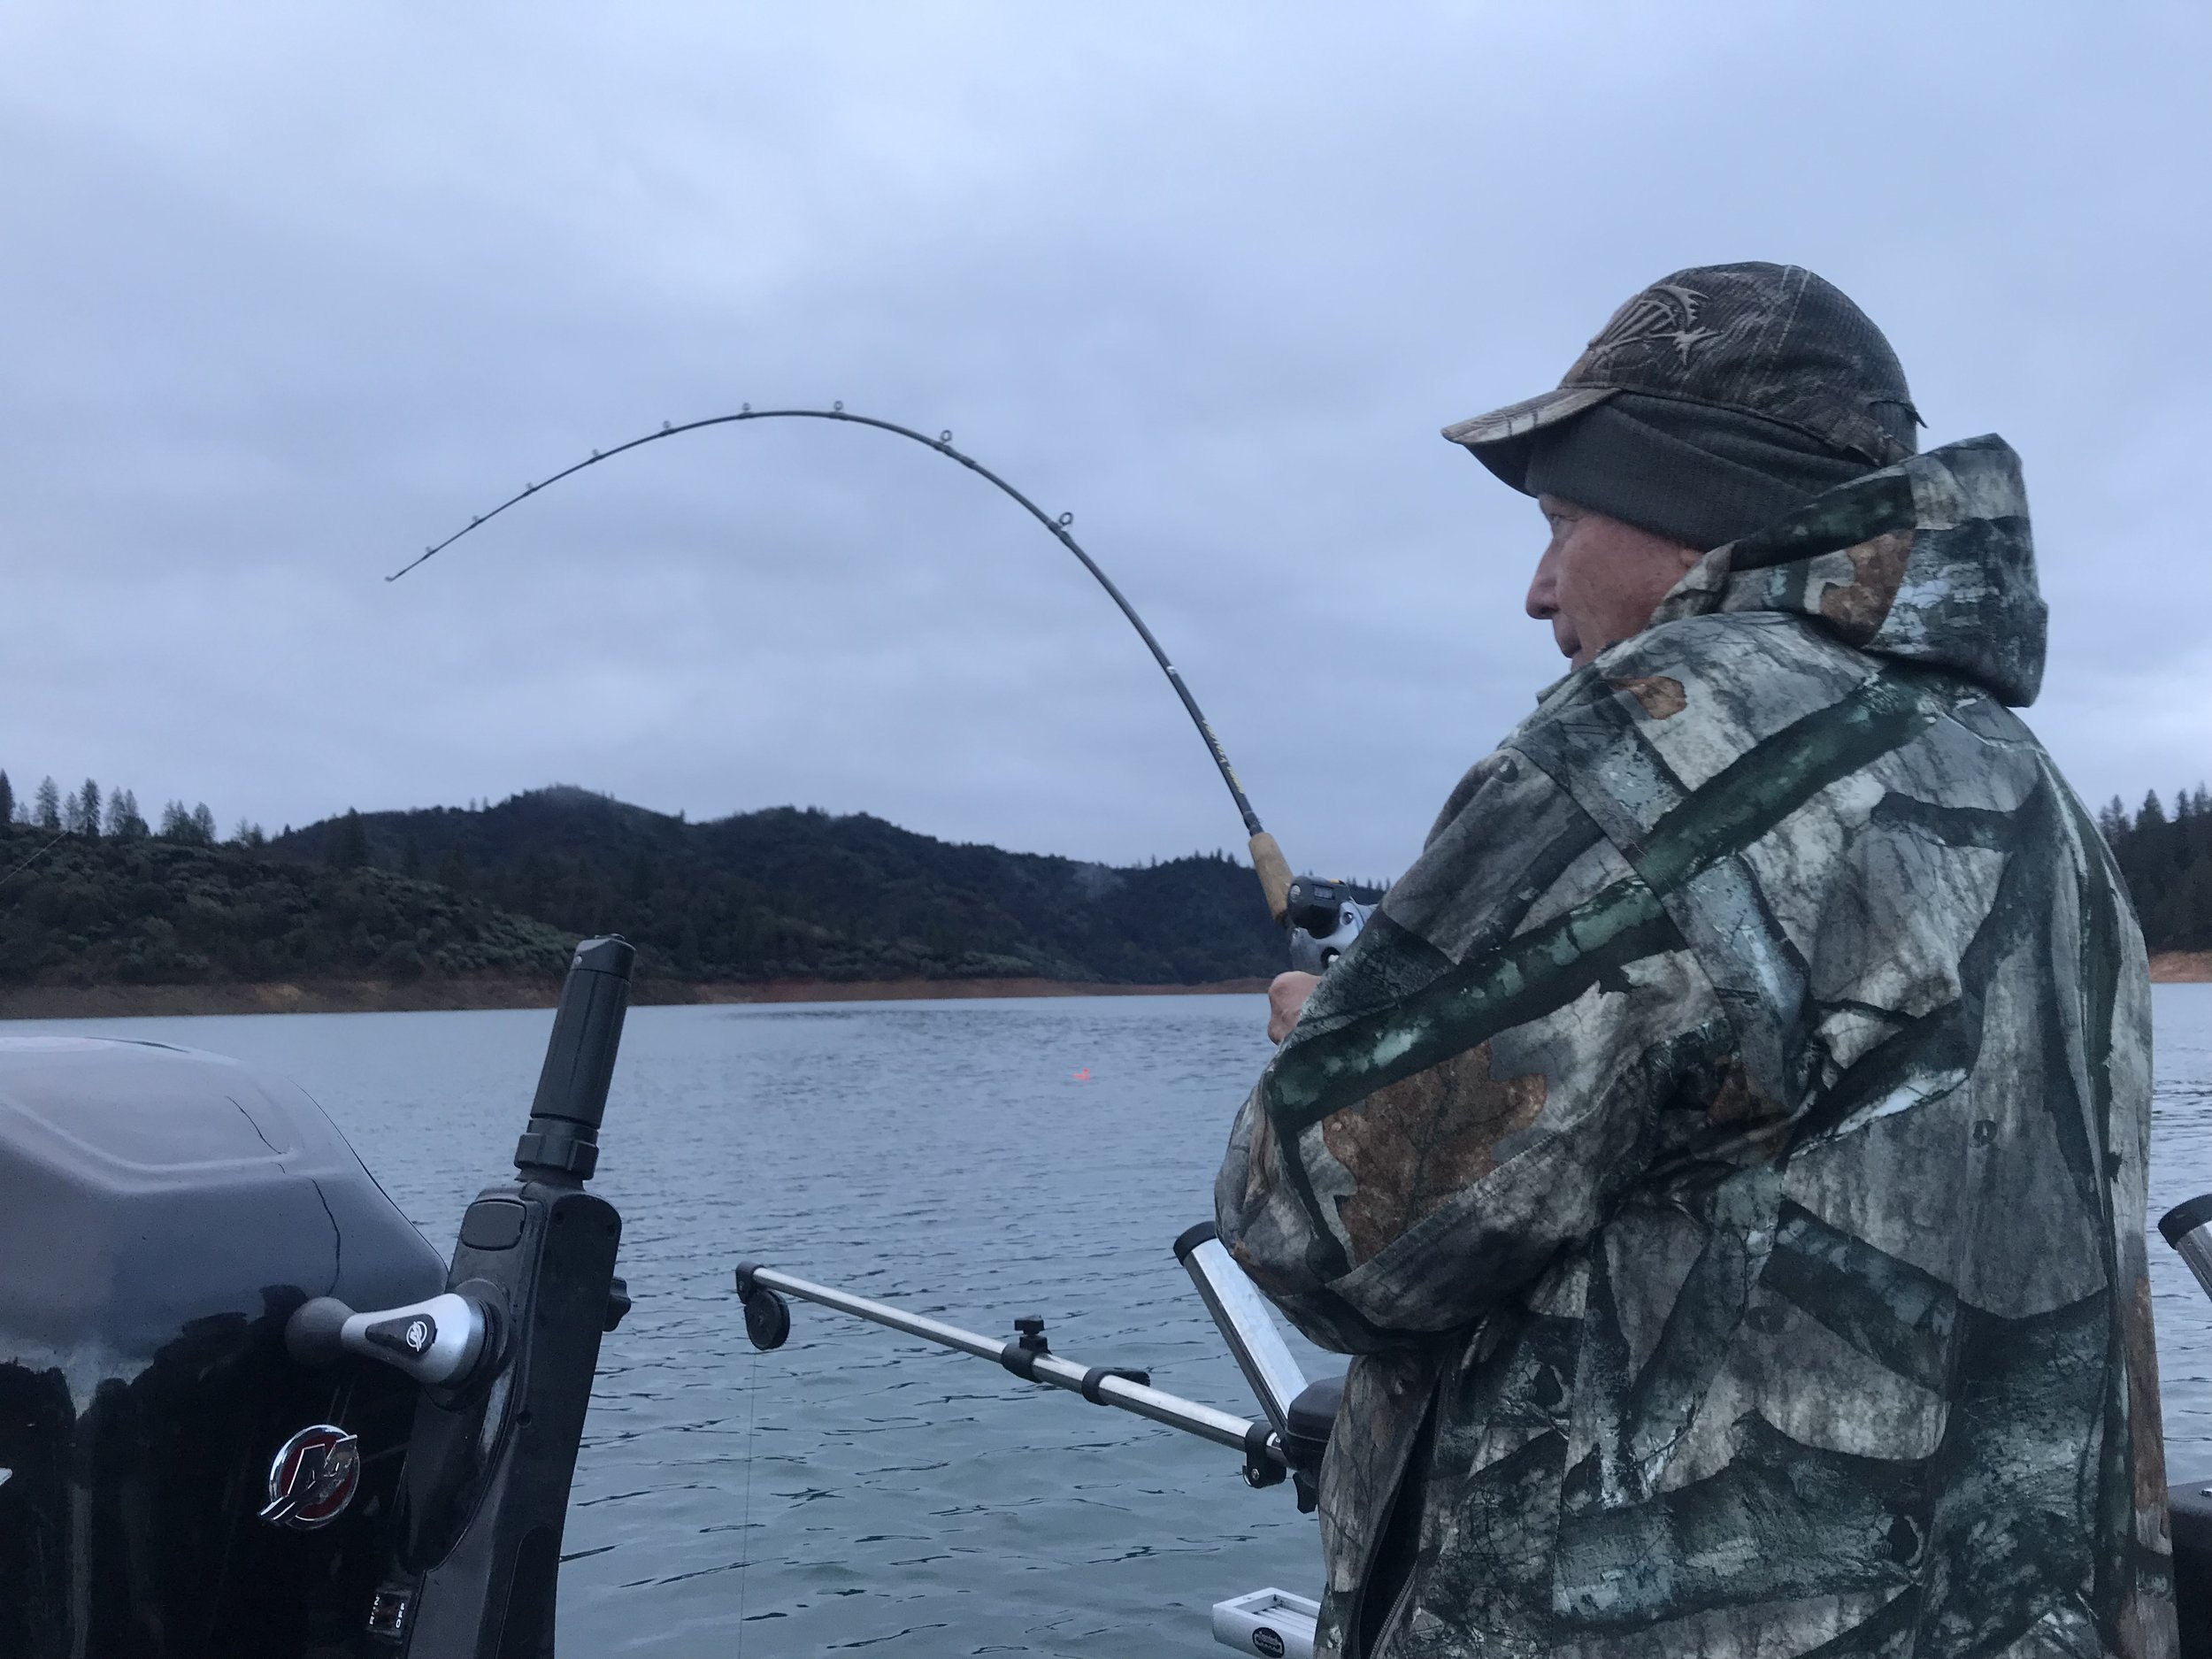 Trolling for Shasta Lake trout and salmon is my preferred method for catching these great fish year round.